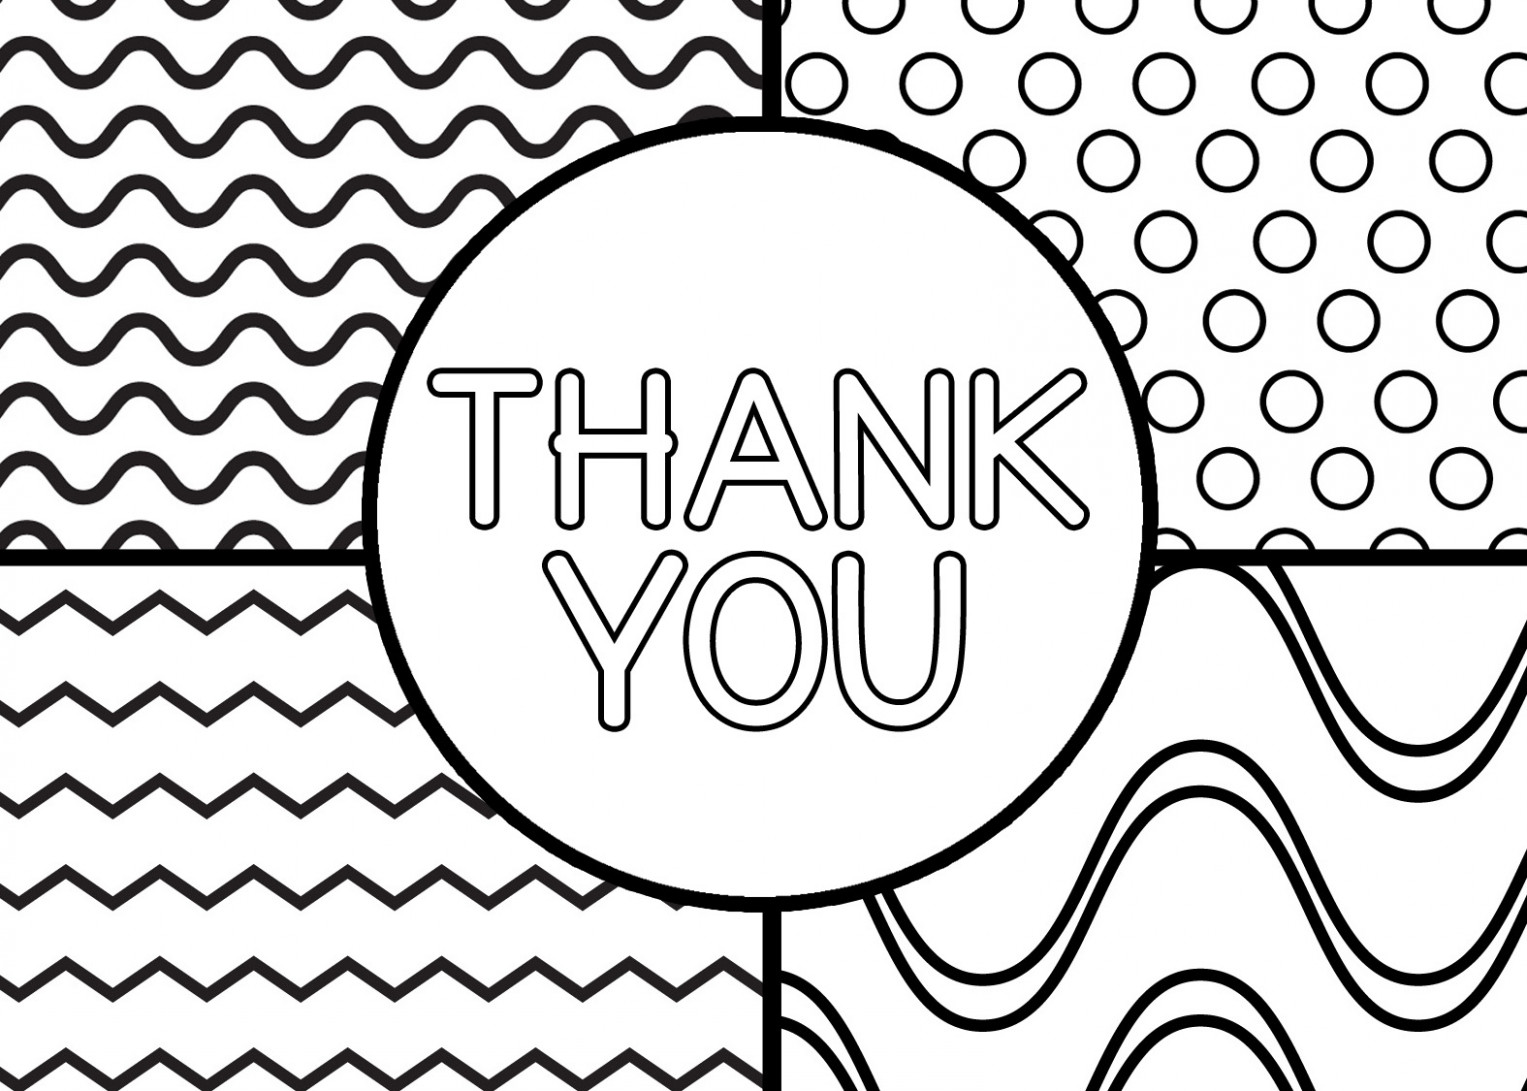 thank you card coloring page - Villa-chems.com